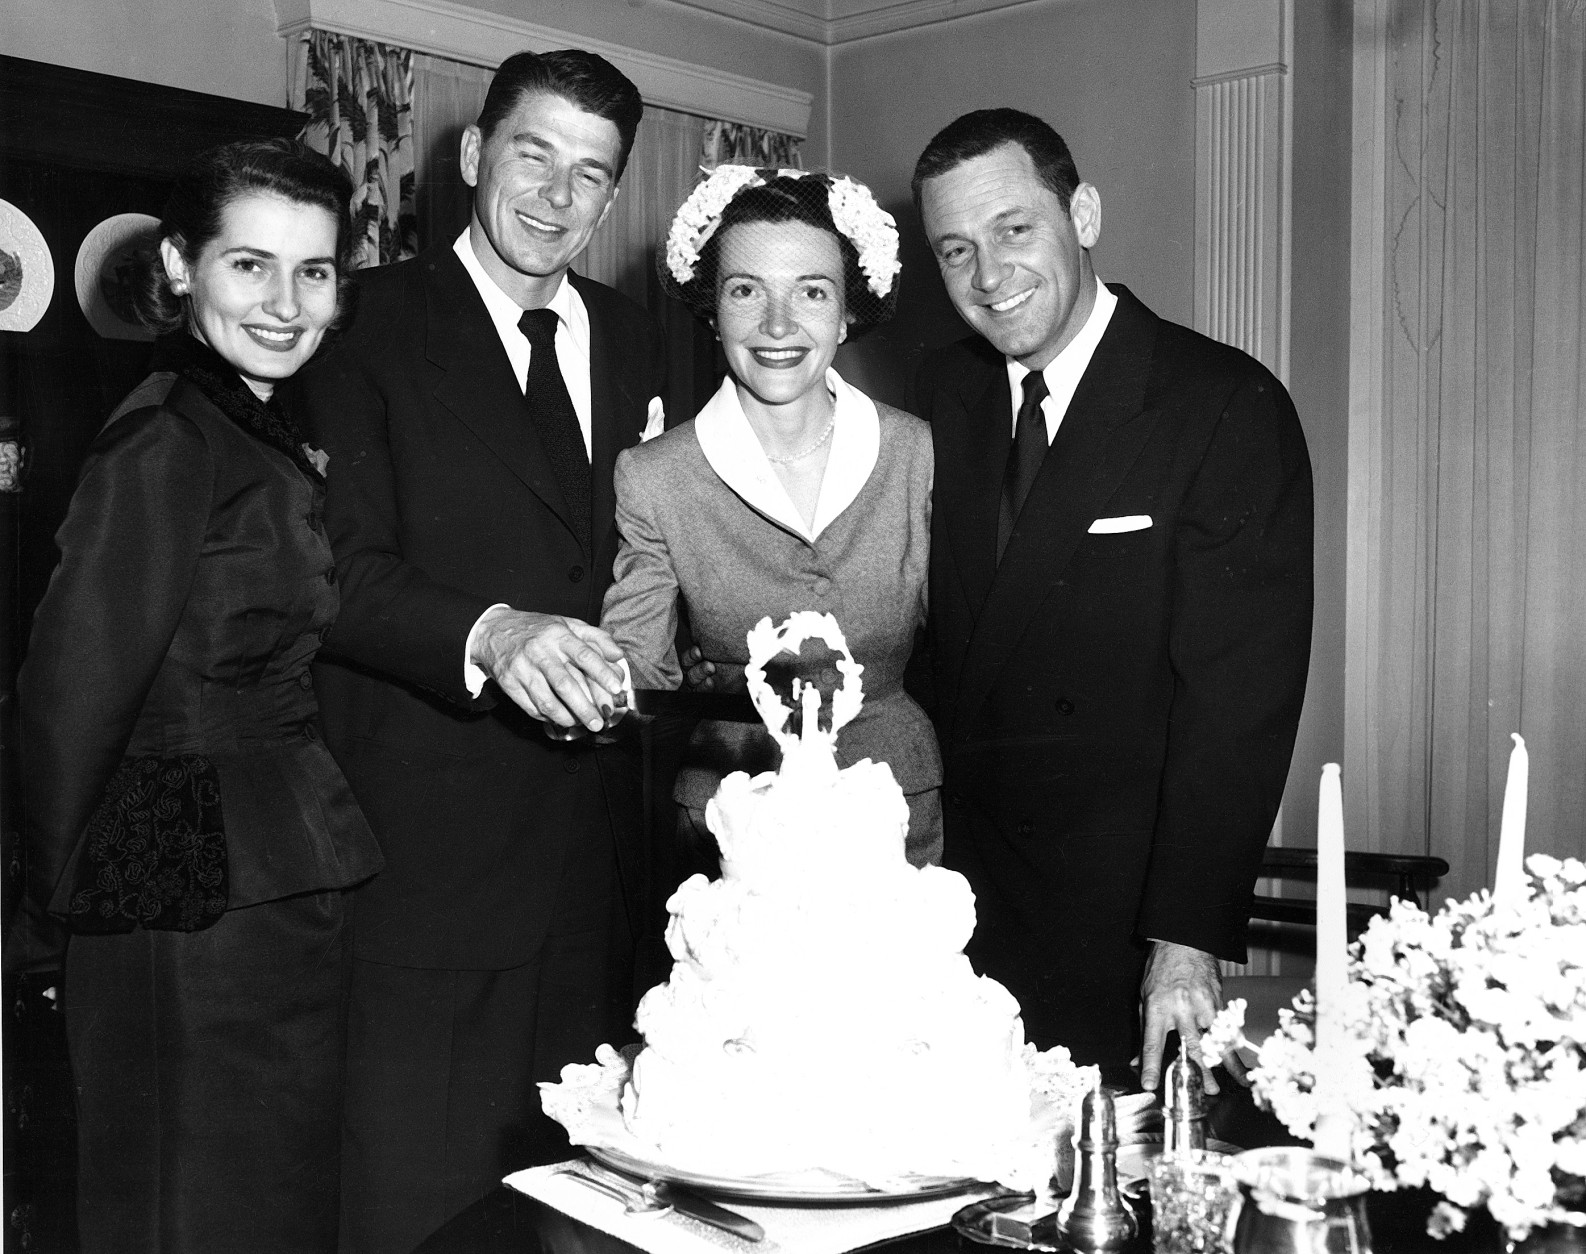 Actor Ronald Reagan and his bride, actress Nancy Davis, cut their wedding cake after their marriage at the non-sectarian Little Brown Church of the Valley in North Hollywood, Ca., March 4, 1952.  With them are actress Brenda Marshall, left, and her husband, actor William Holden.  (AP Photo)